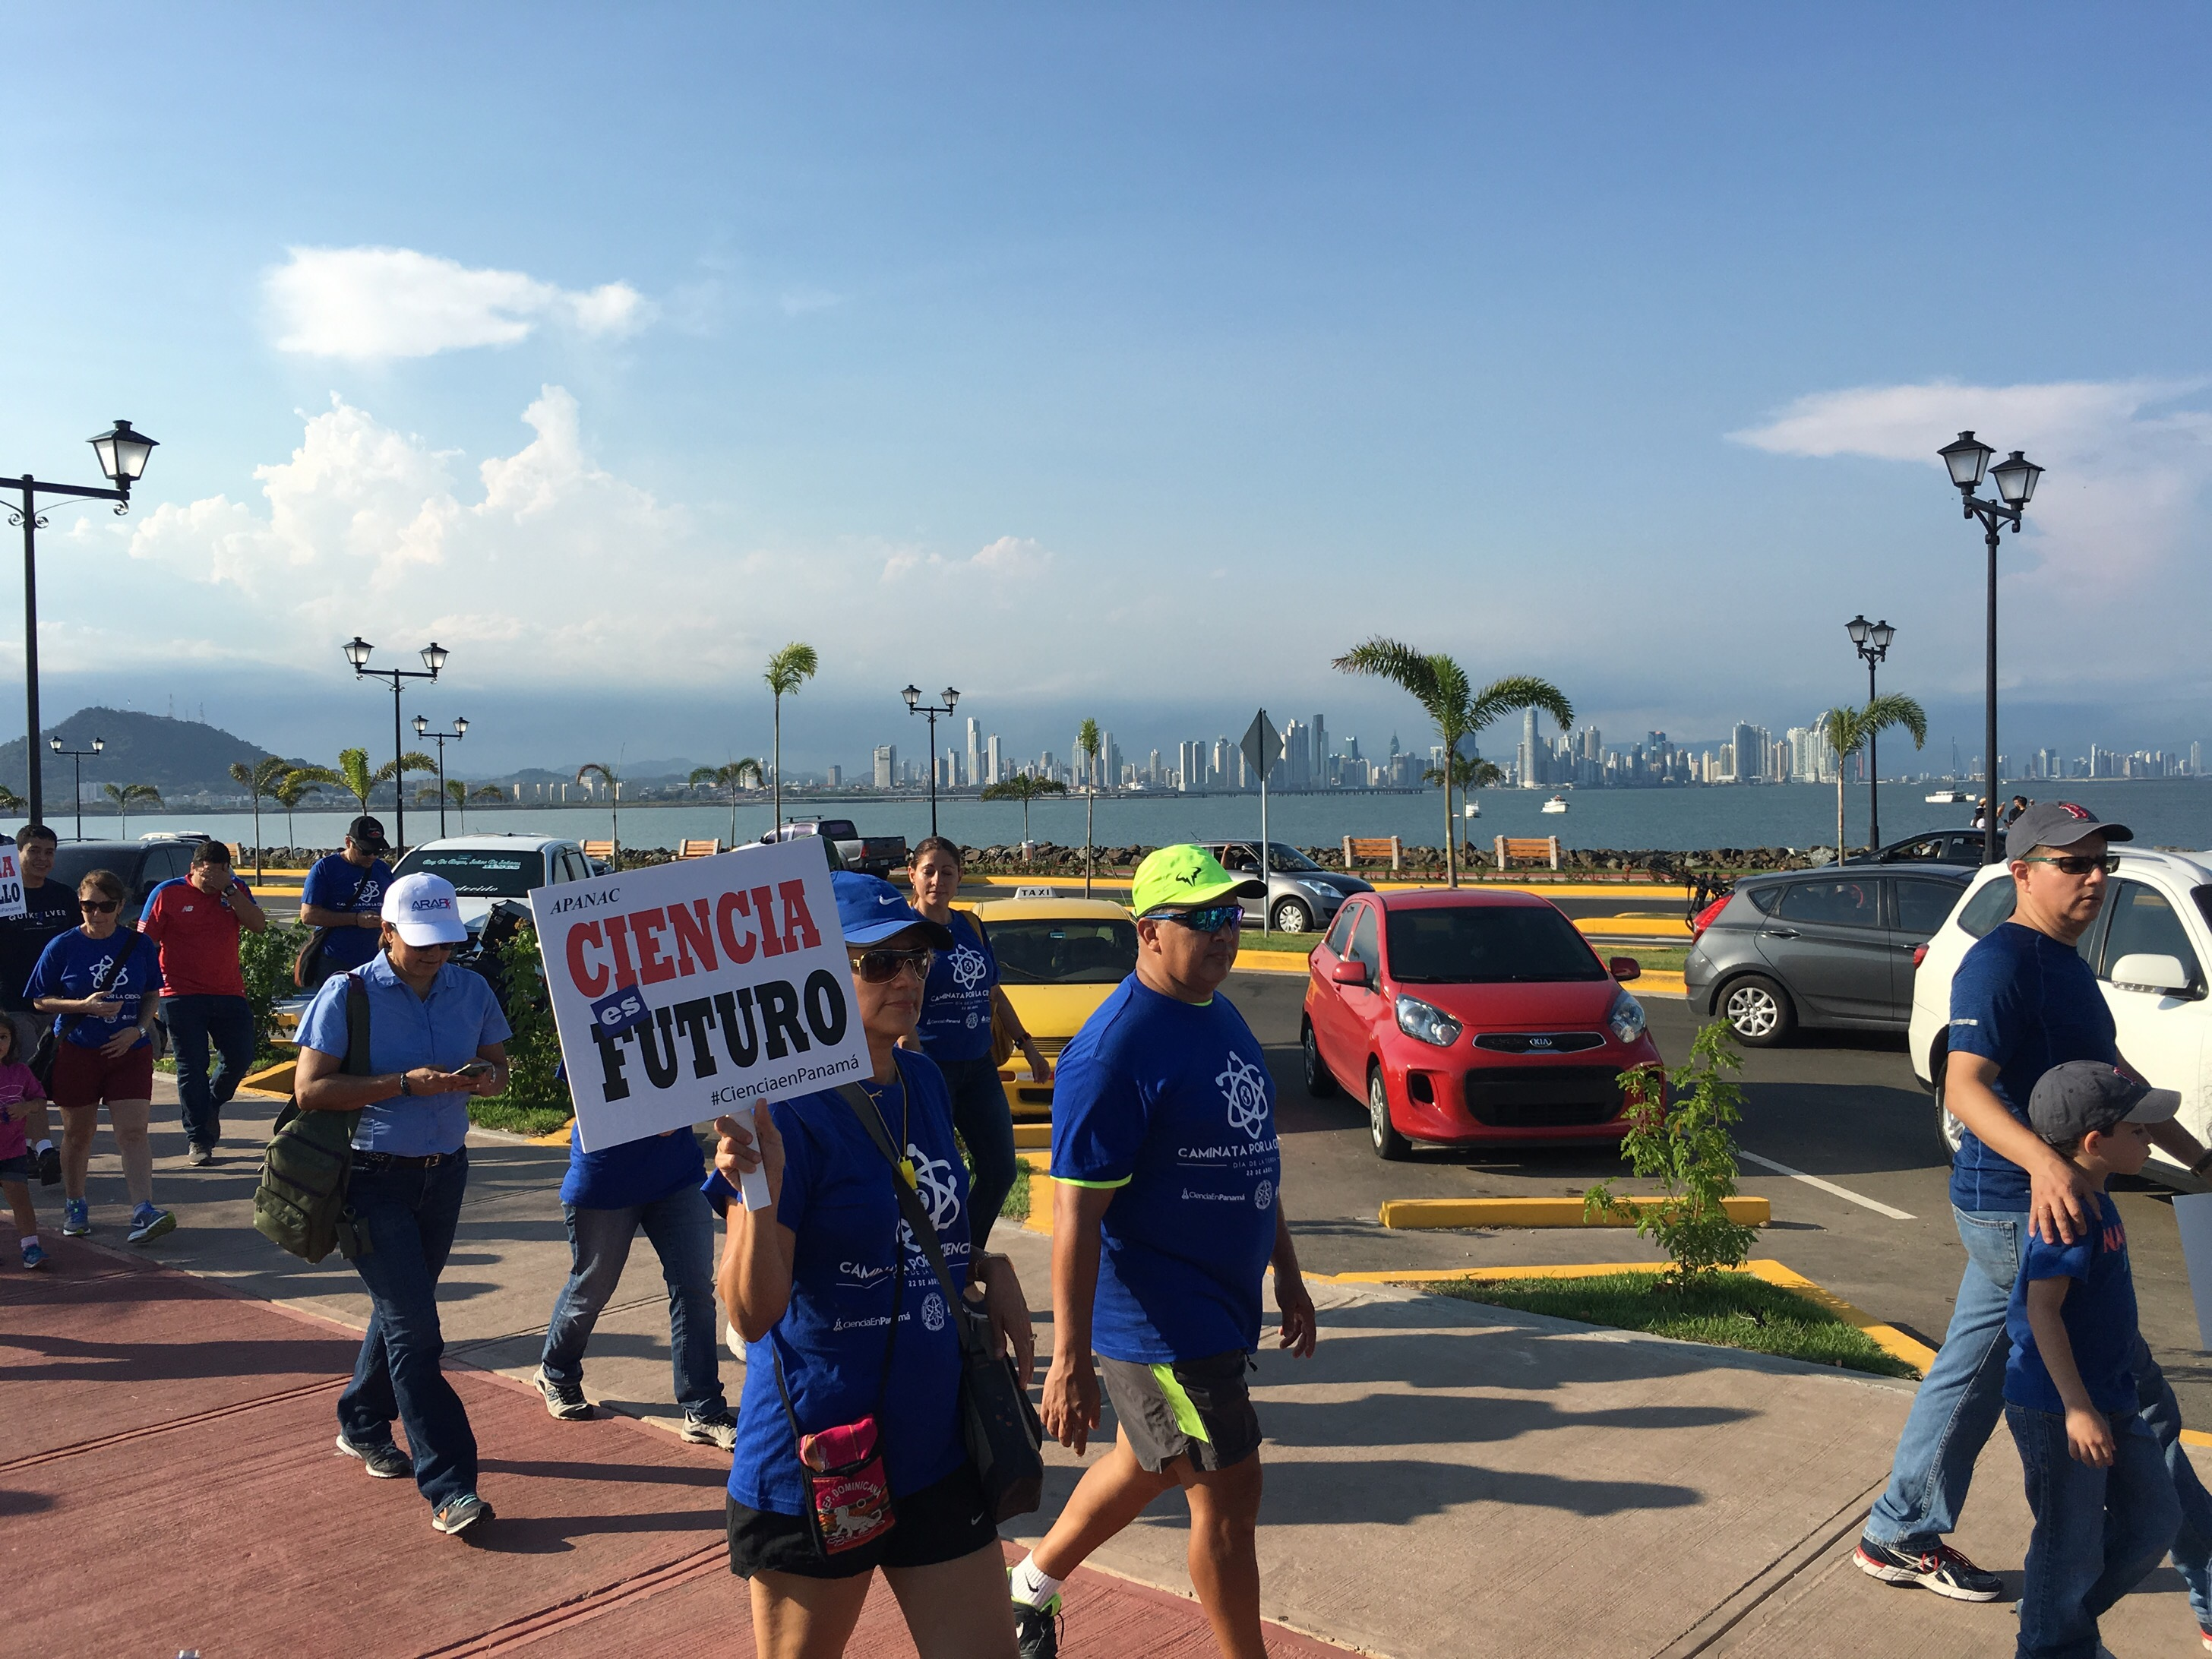 Caminata para la Ciencia [Science March].  Panamá City in the Background.